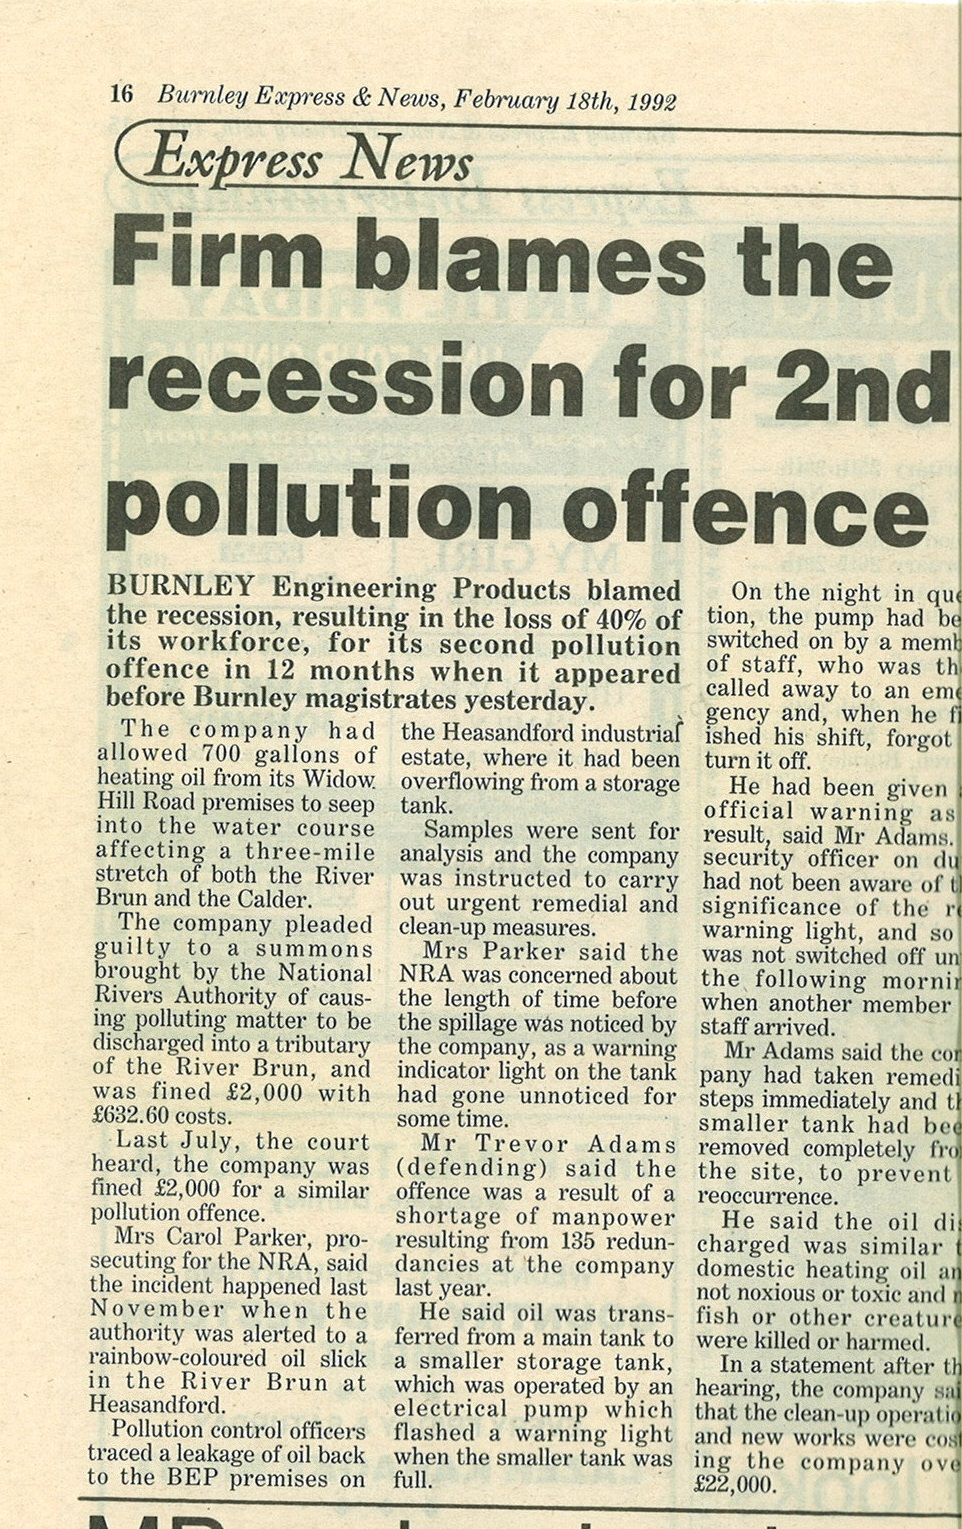 1992 Feb 18 Firm blames recession for 2nd pollution offence.jpg